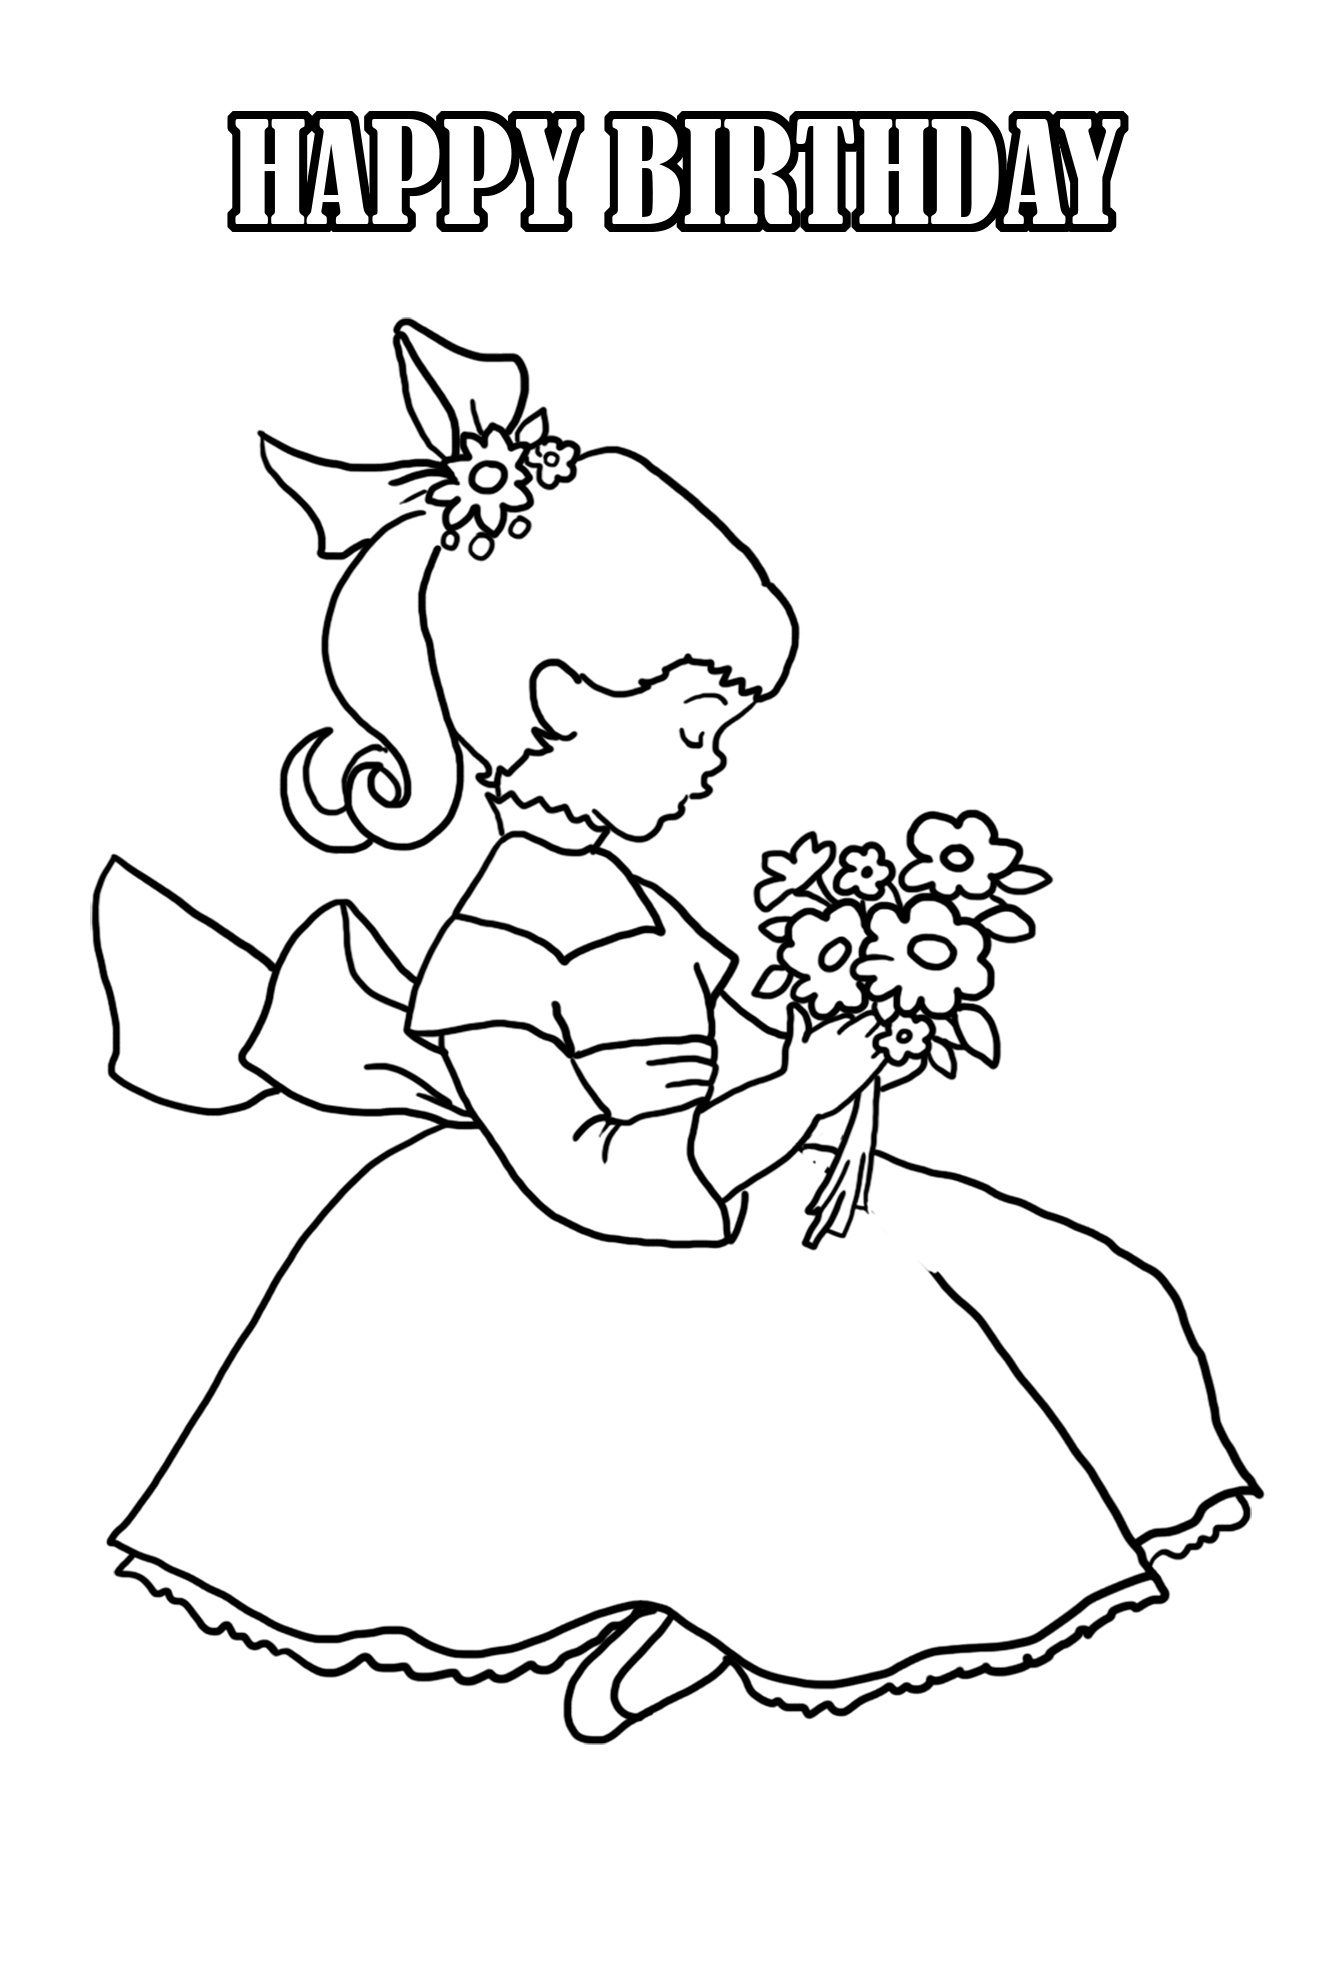 Birthday Coloring Pages - Free Printable Good Touch Bad Touch Coloring Book